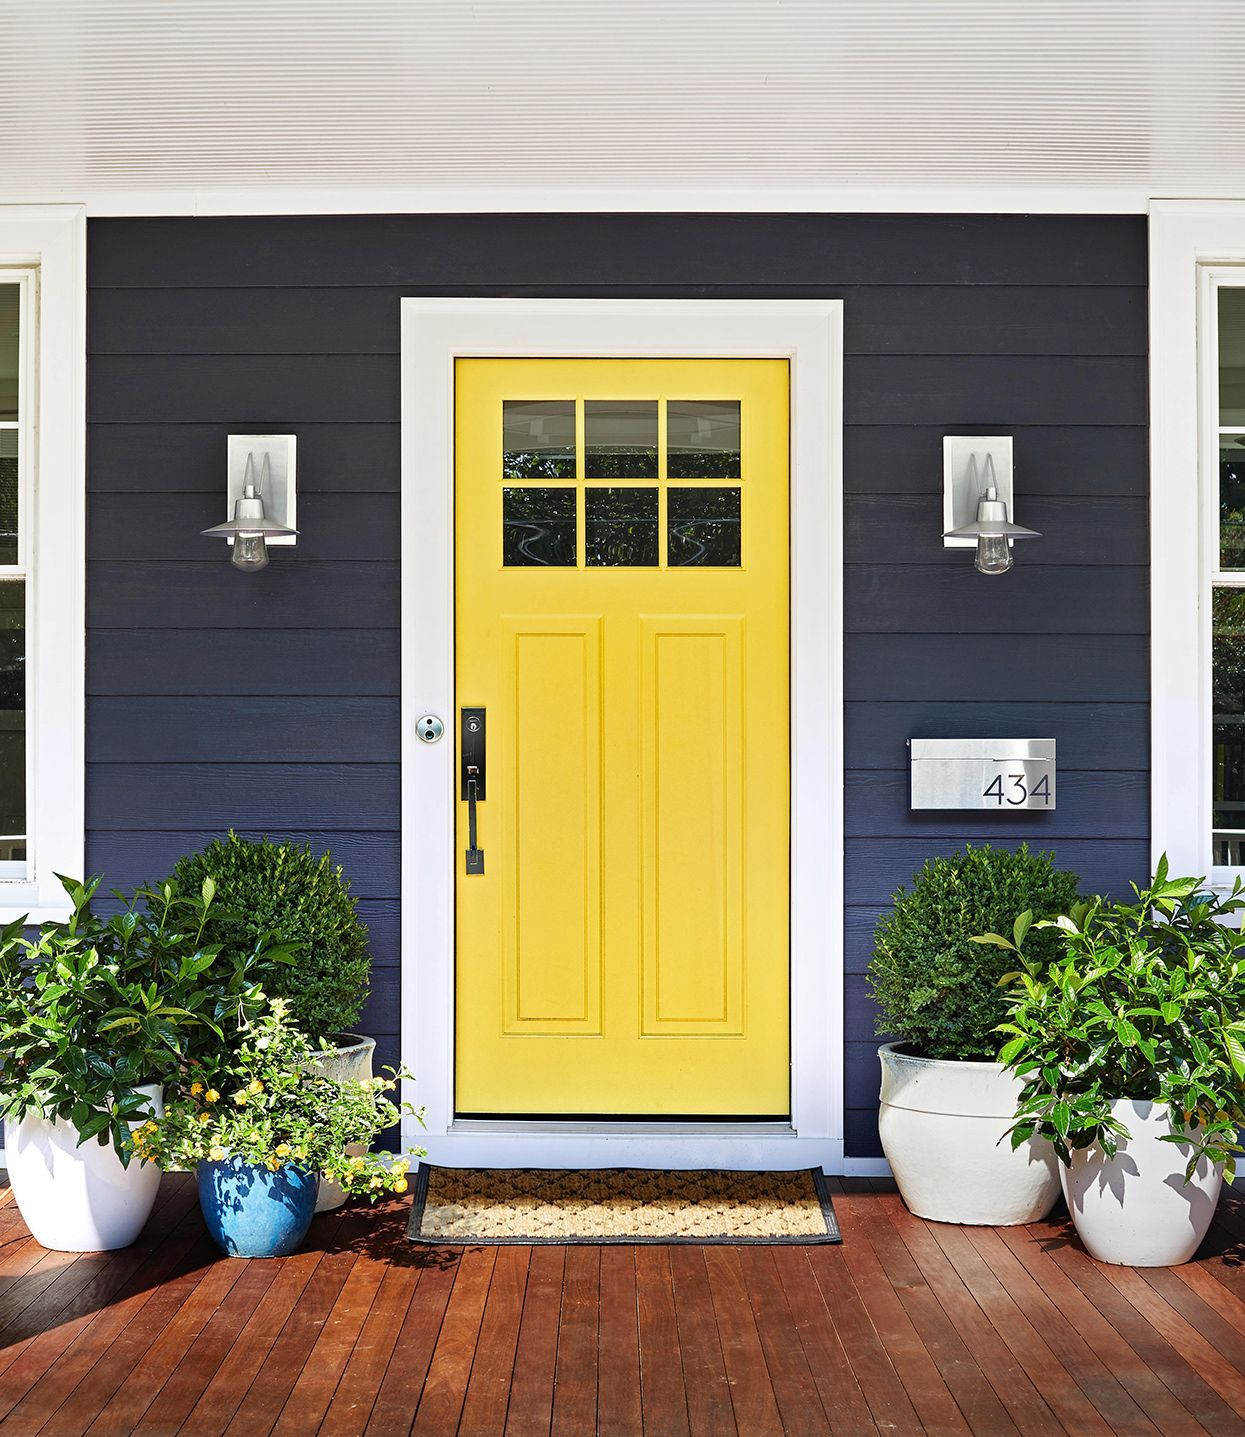 12 Stylish Ideas To Make The Most Of A Small Front Porch In 2020 House Exterior House Paint Exterior Painted Exterior Doors